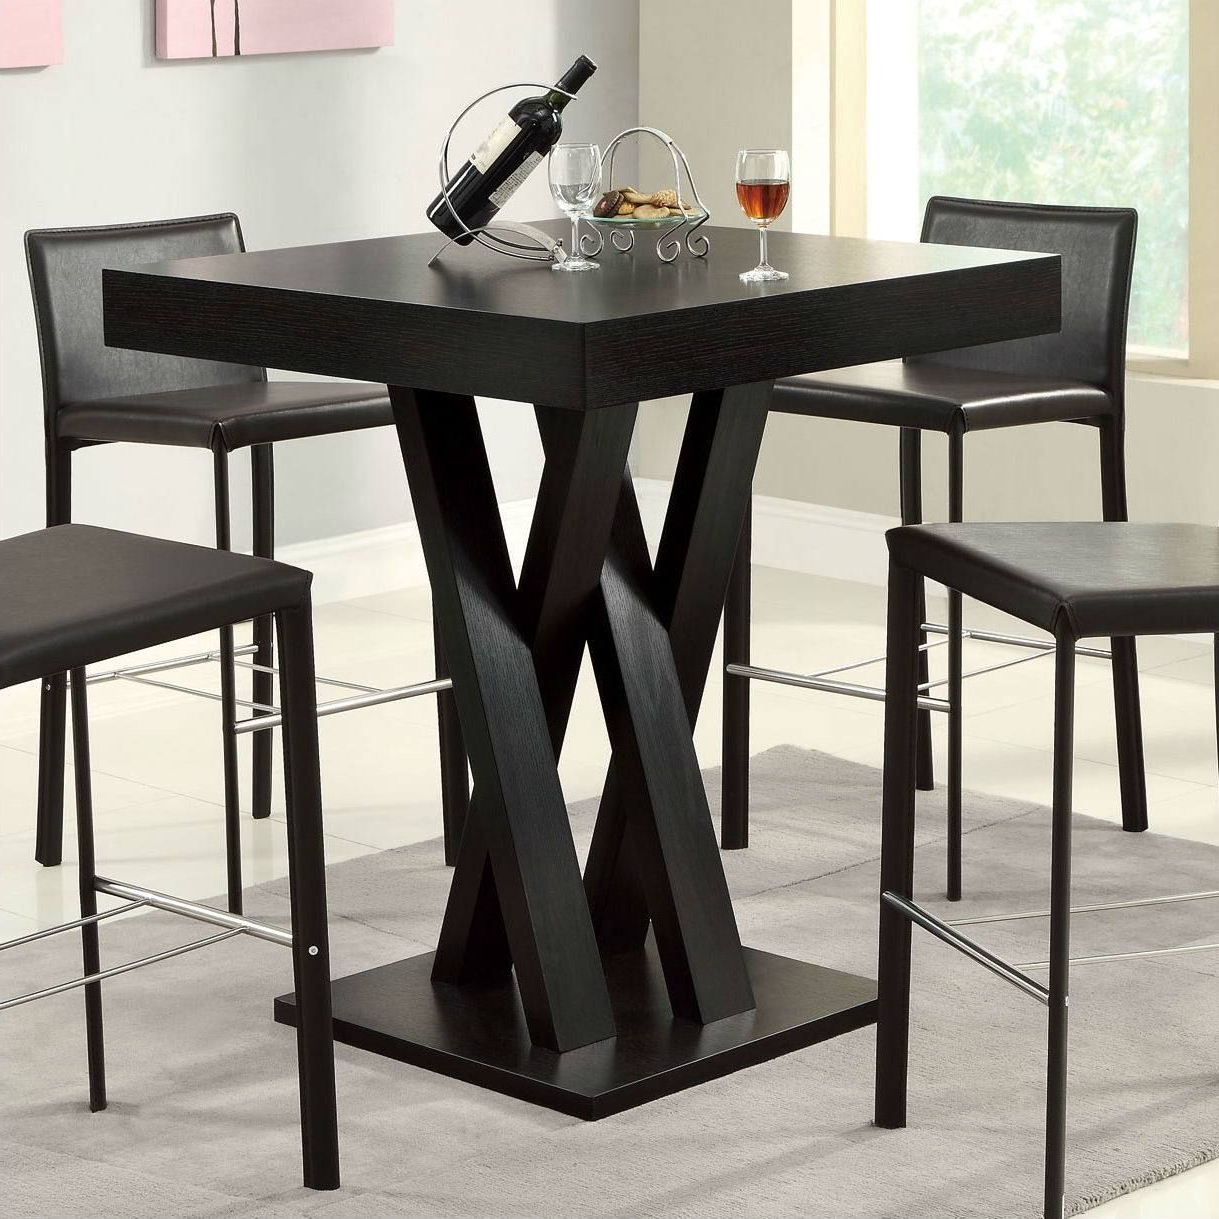 Most Recently Released Modern 40 Inch High Square Dining Table In Dark Cappuccino Finish In Inside 33 Inch Industrial Round Tables (View 16 of 20)